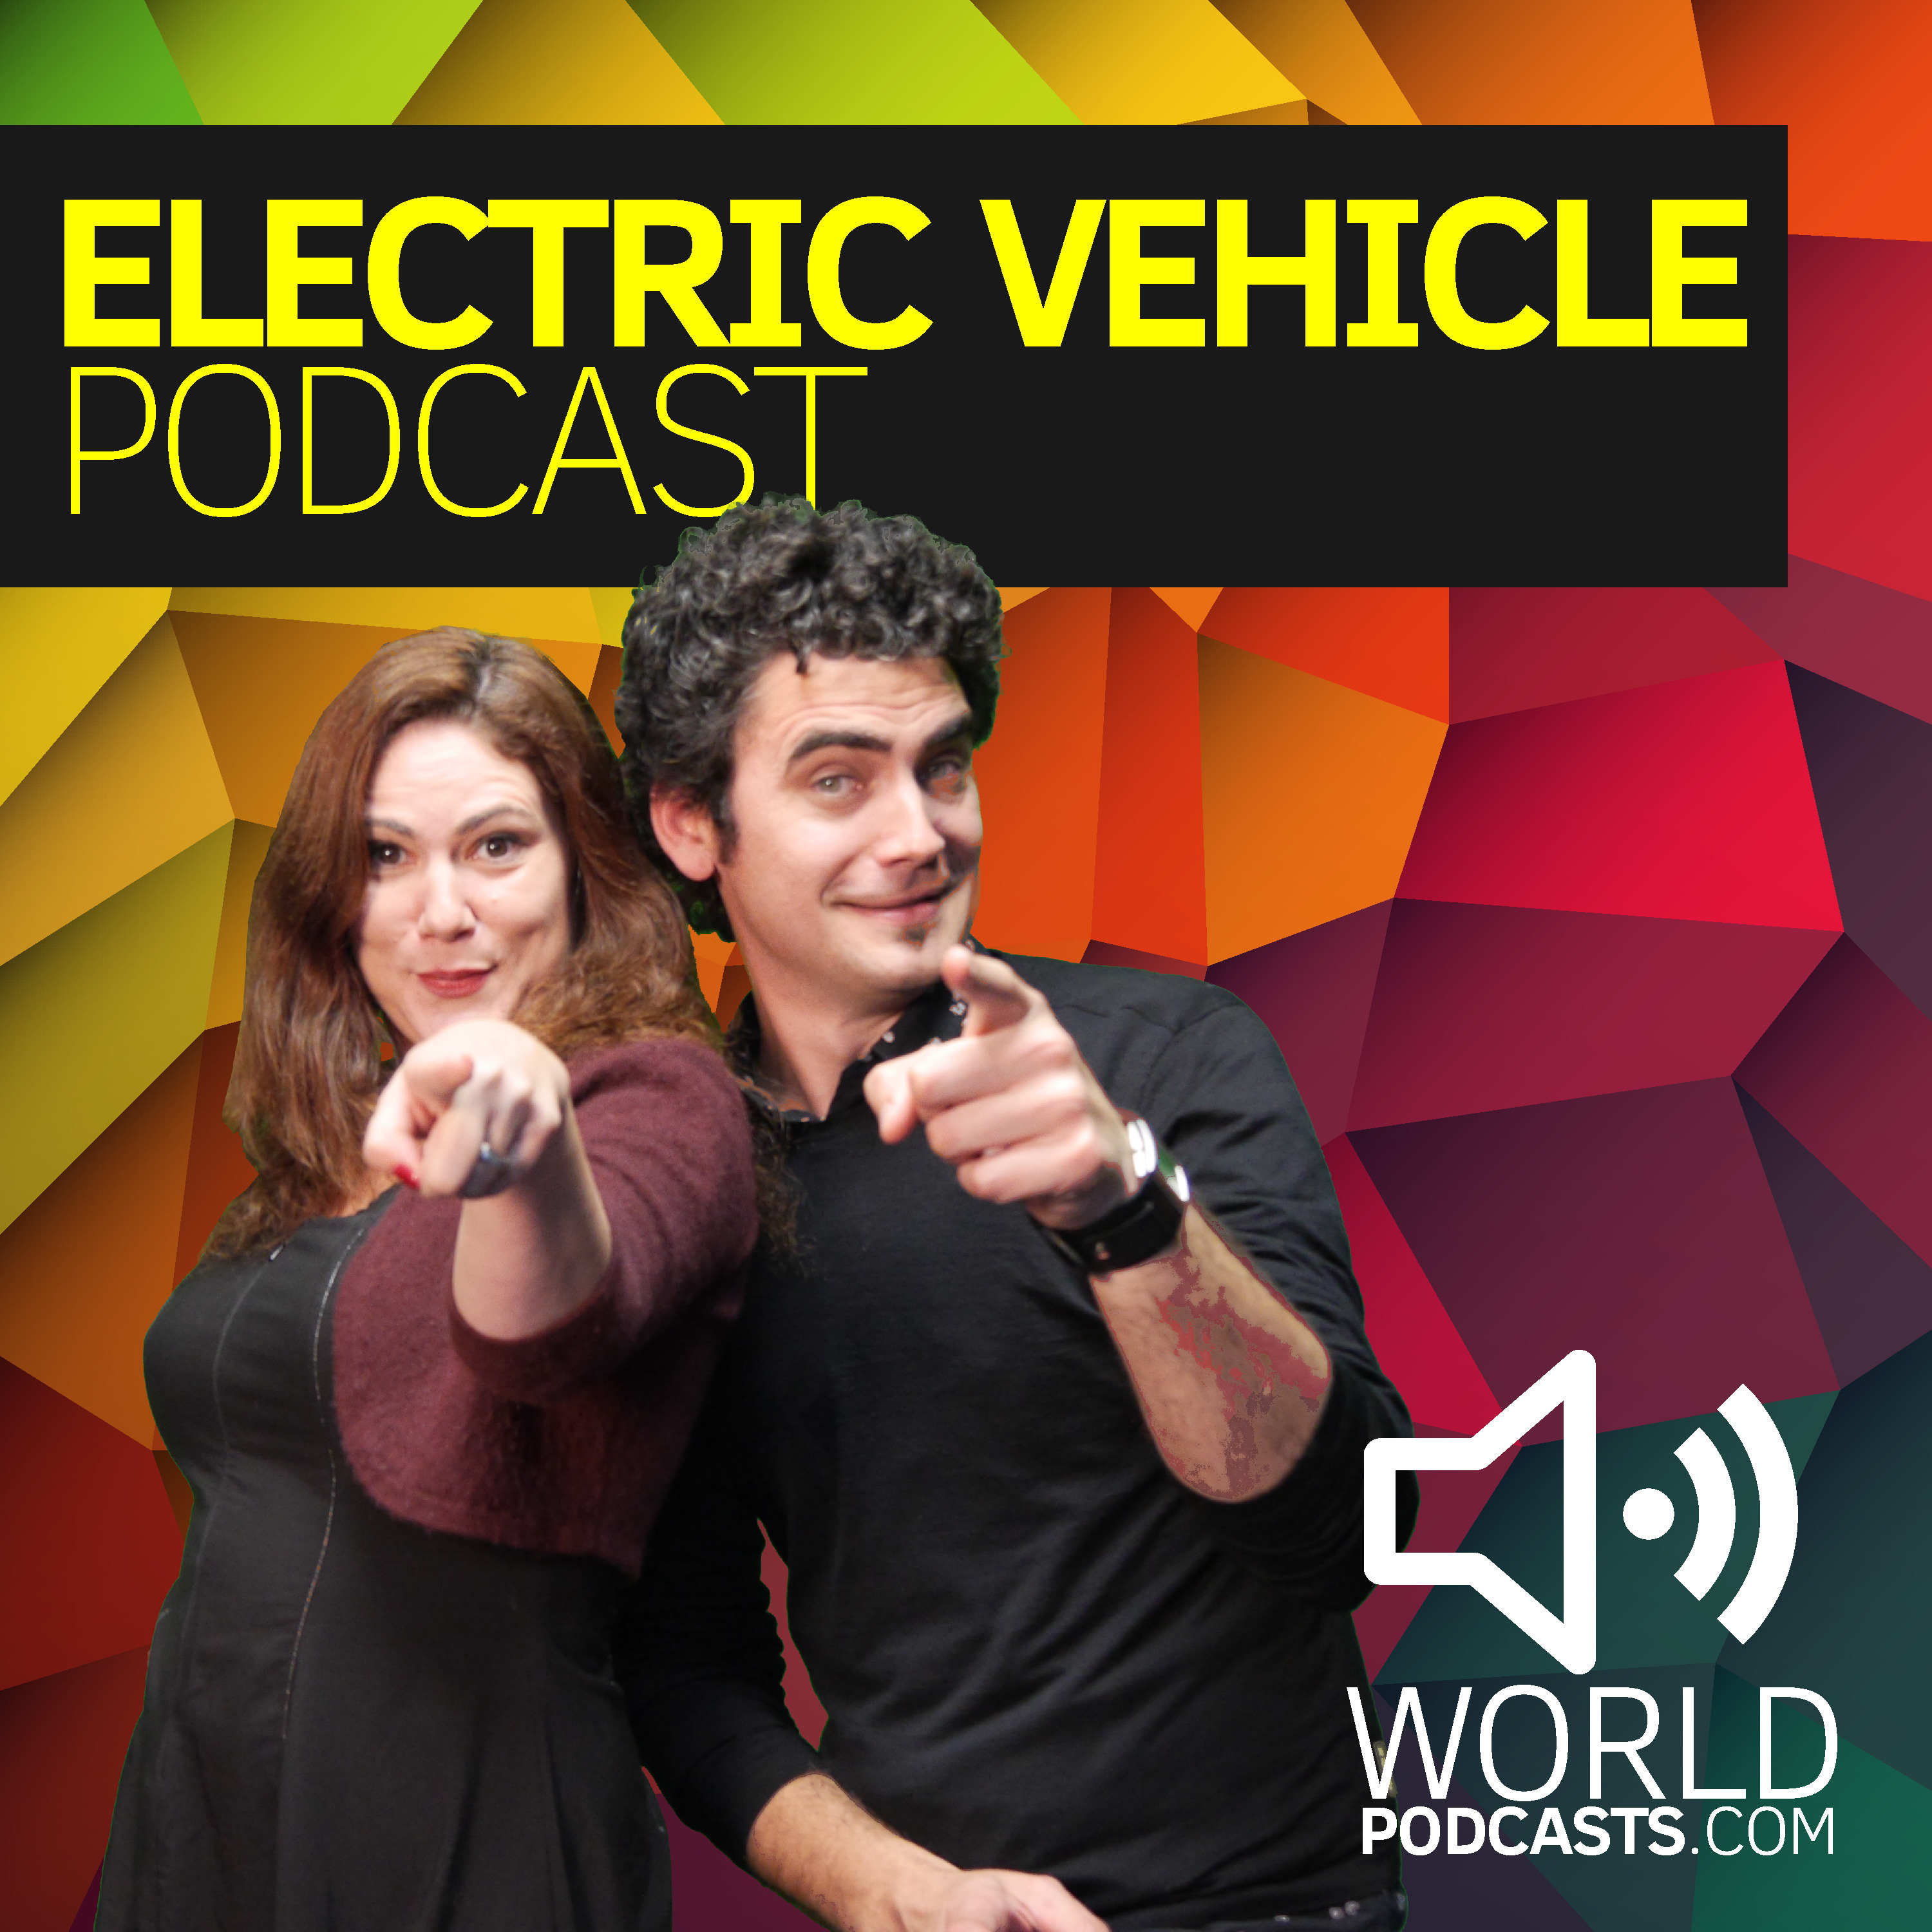 EV Podcast: EV Production Begins in Australia